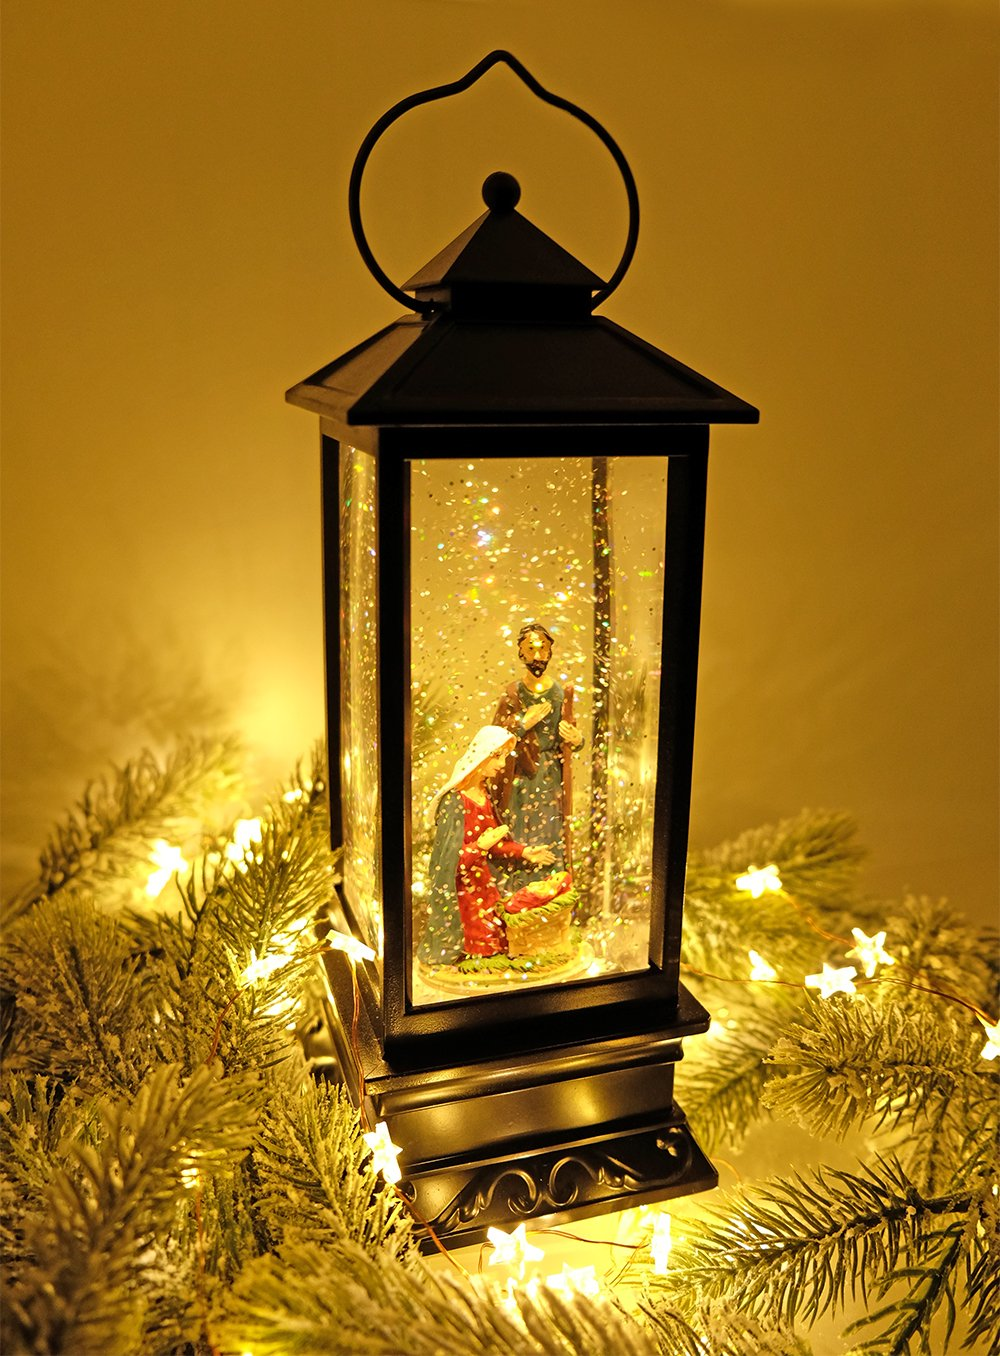 DRomance Lighted Water Lantern Glittering with Music USB & Battery Powered Singing Snow Globe for Kids, Nativity Water Snow Glitter Globe Lantern for Christmas Decoration,12 Inch Tall